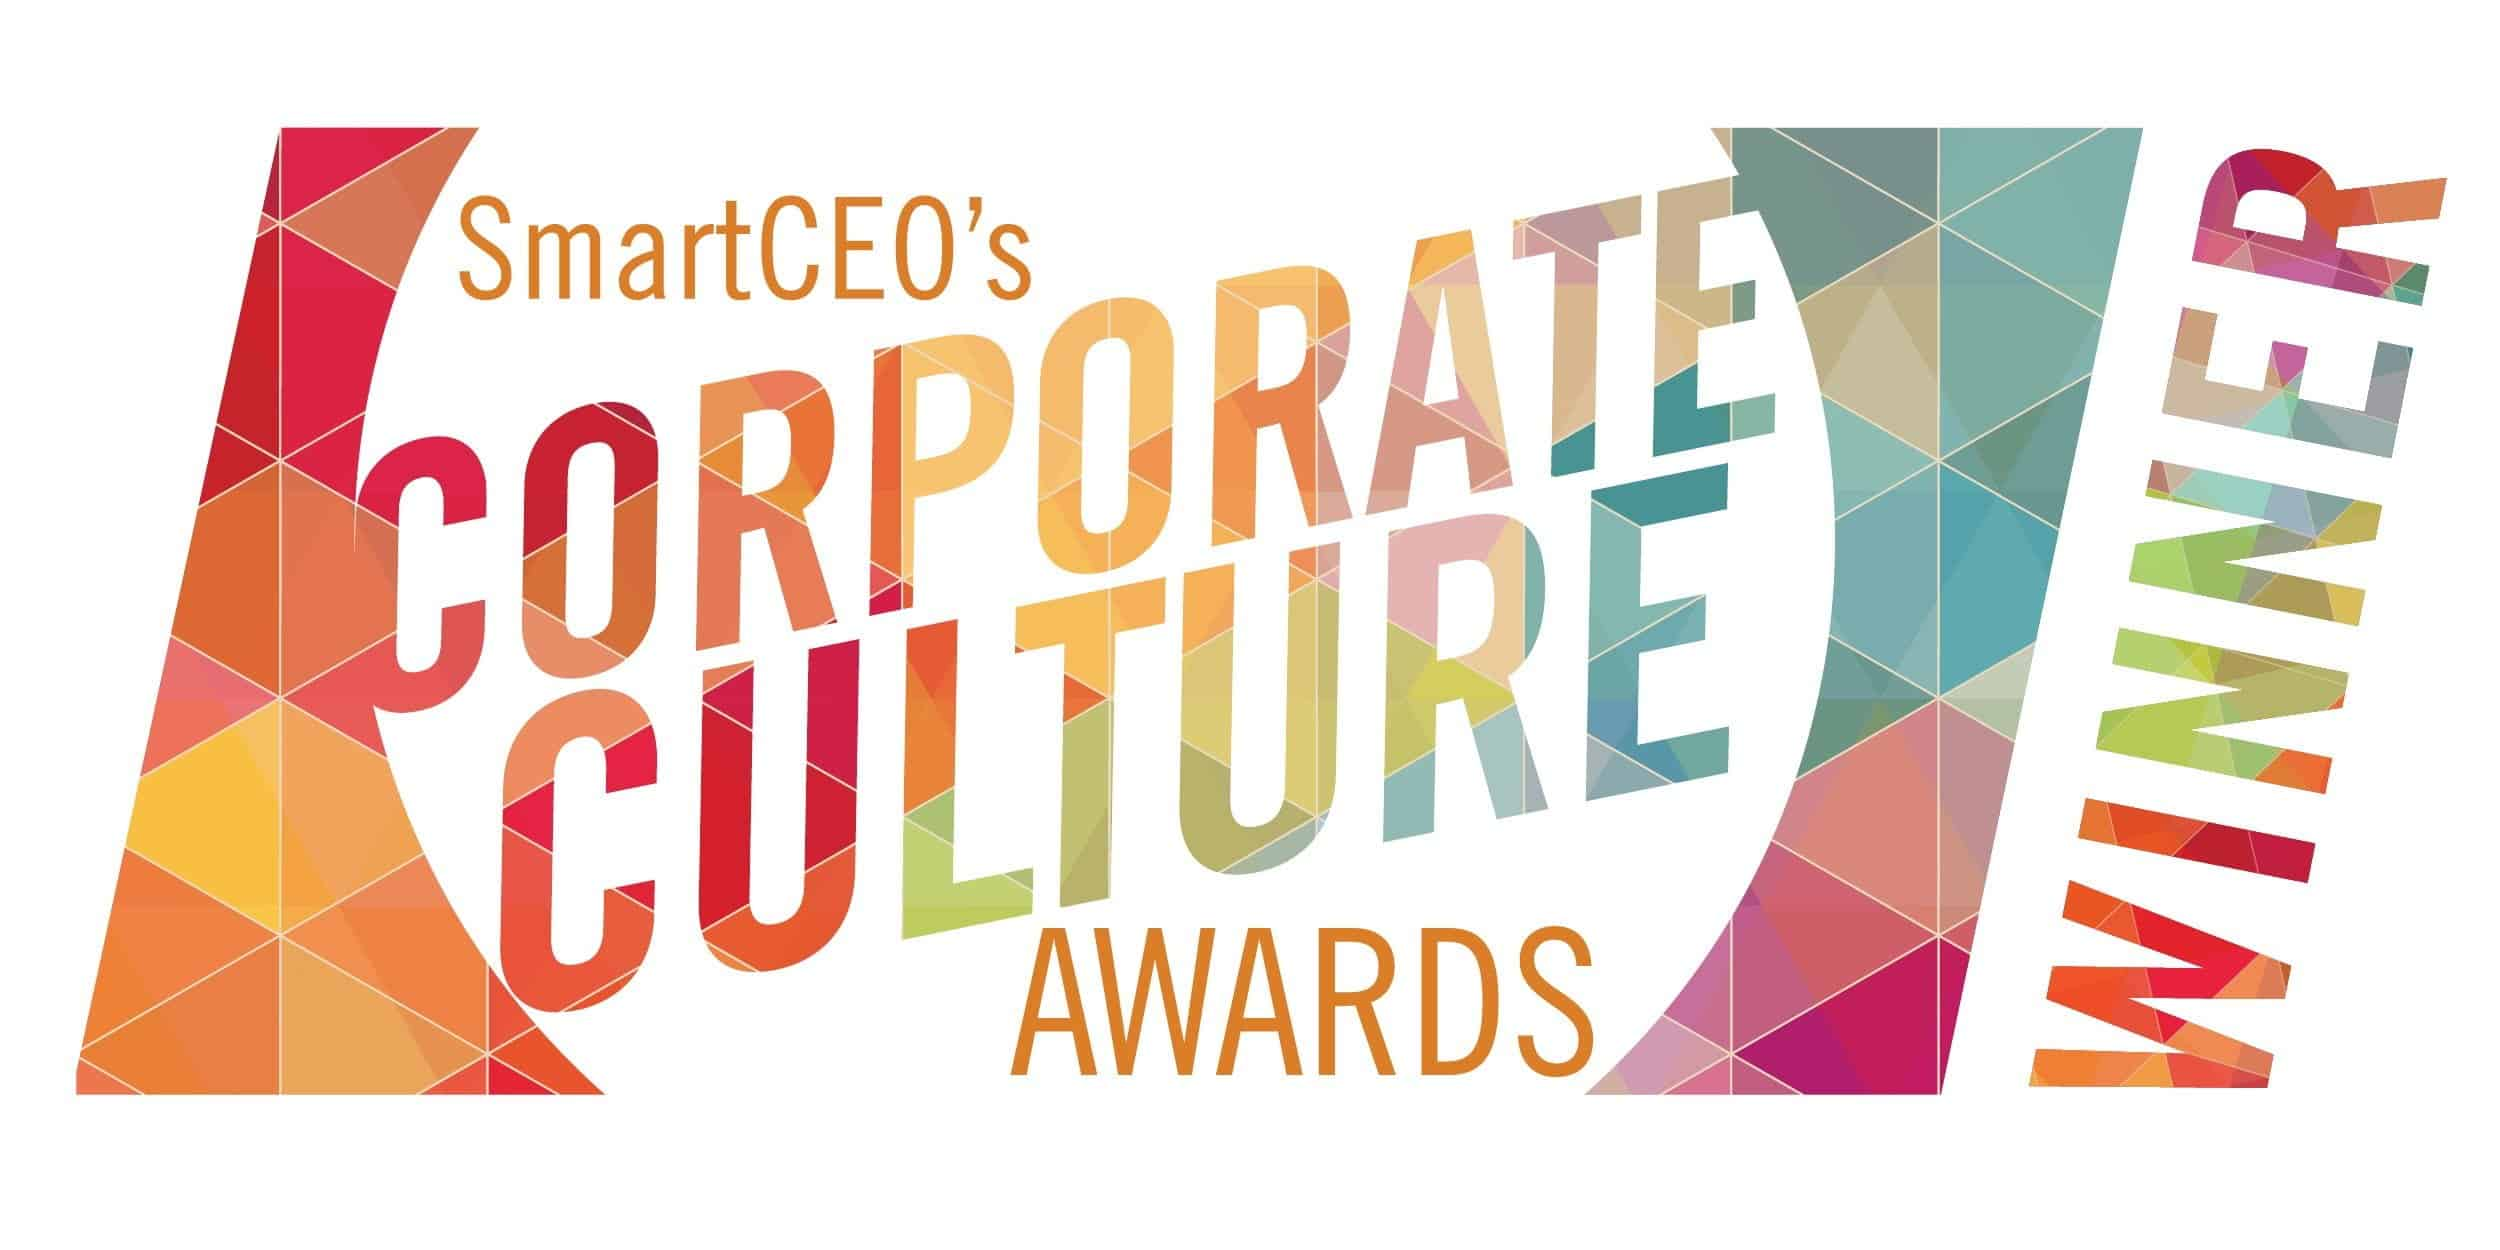 Smart CEO Corporate Culture Award